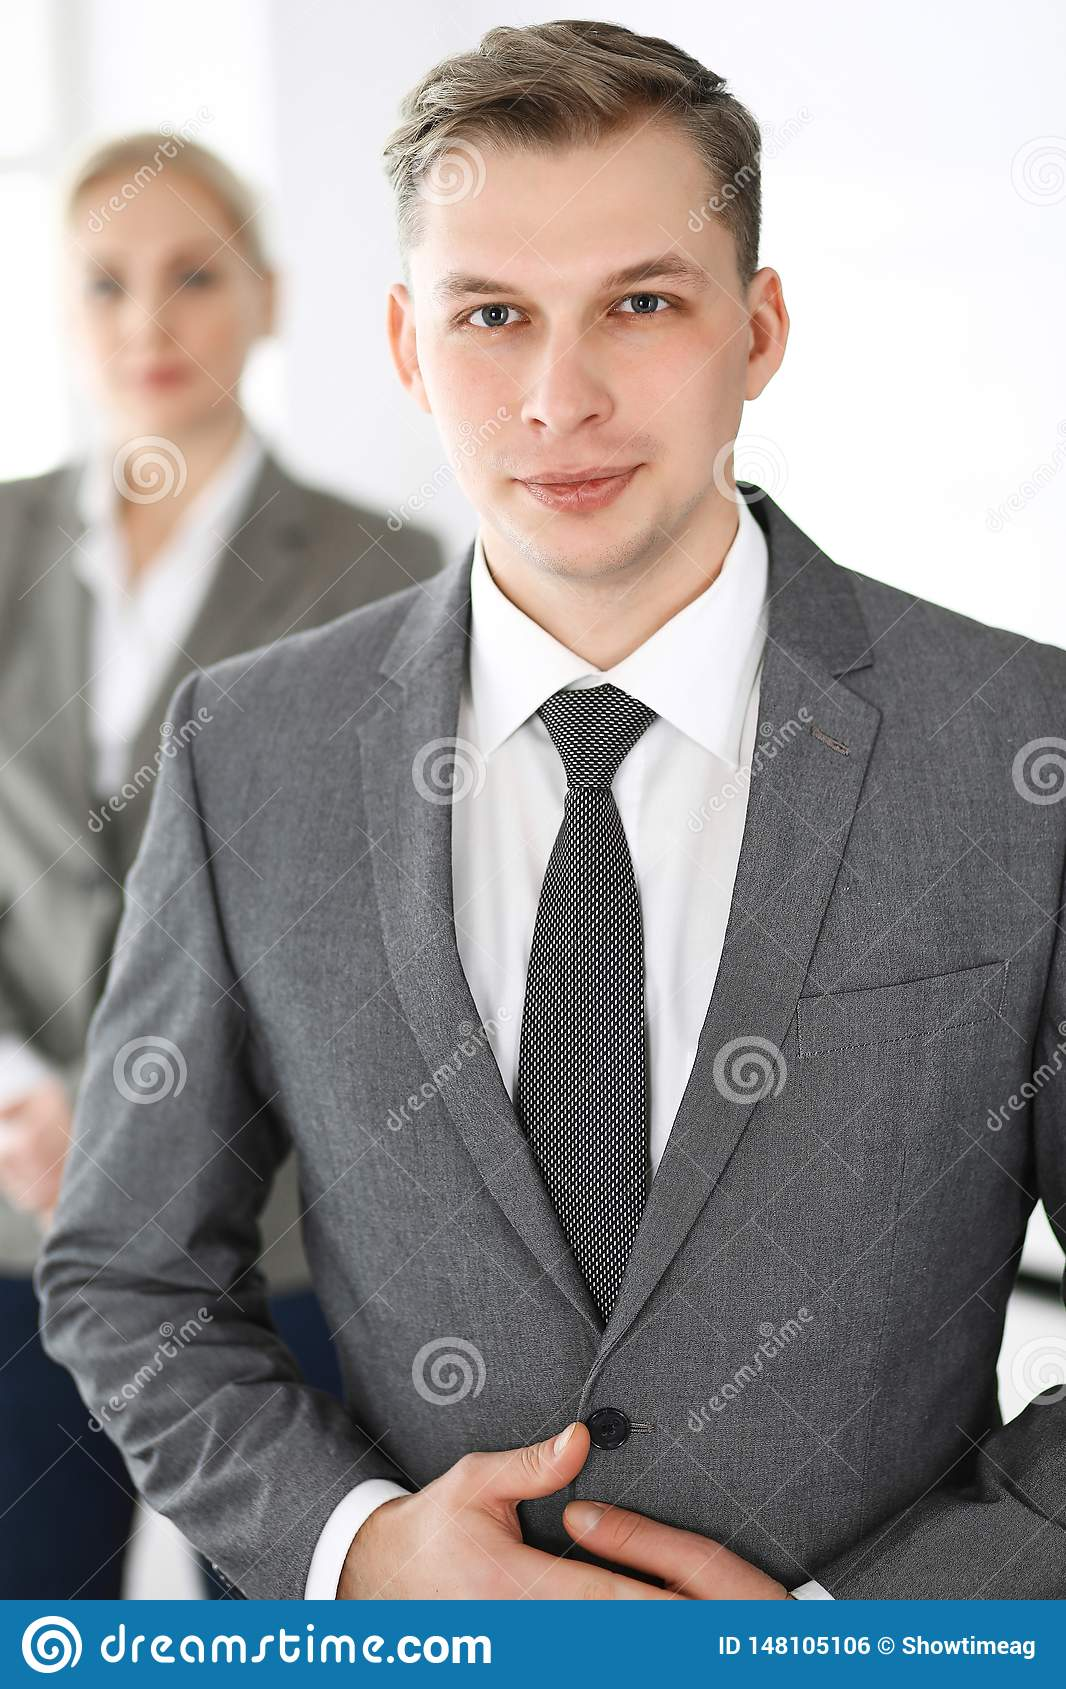 Headshot of businessman standing straight with colleagues at background in office. Group of business people discussing